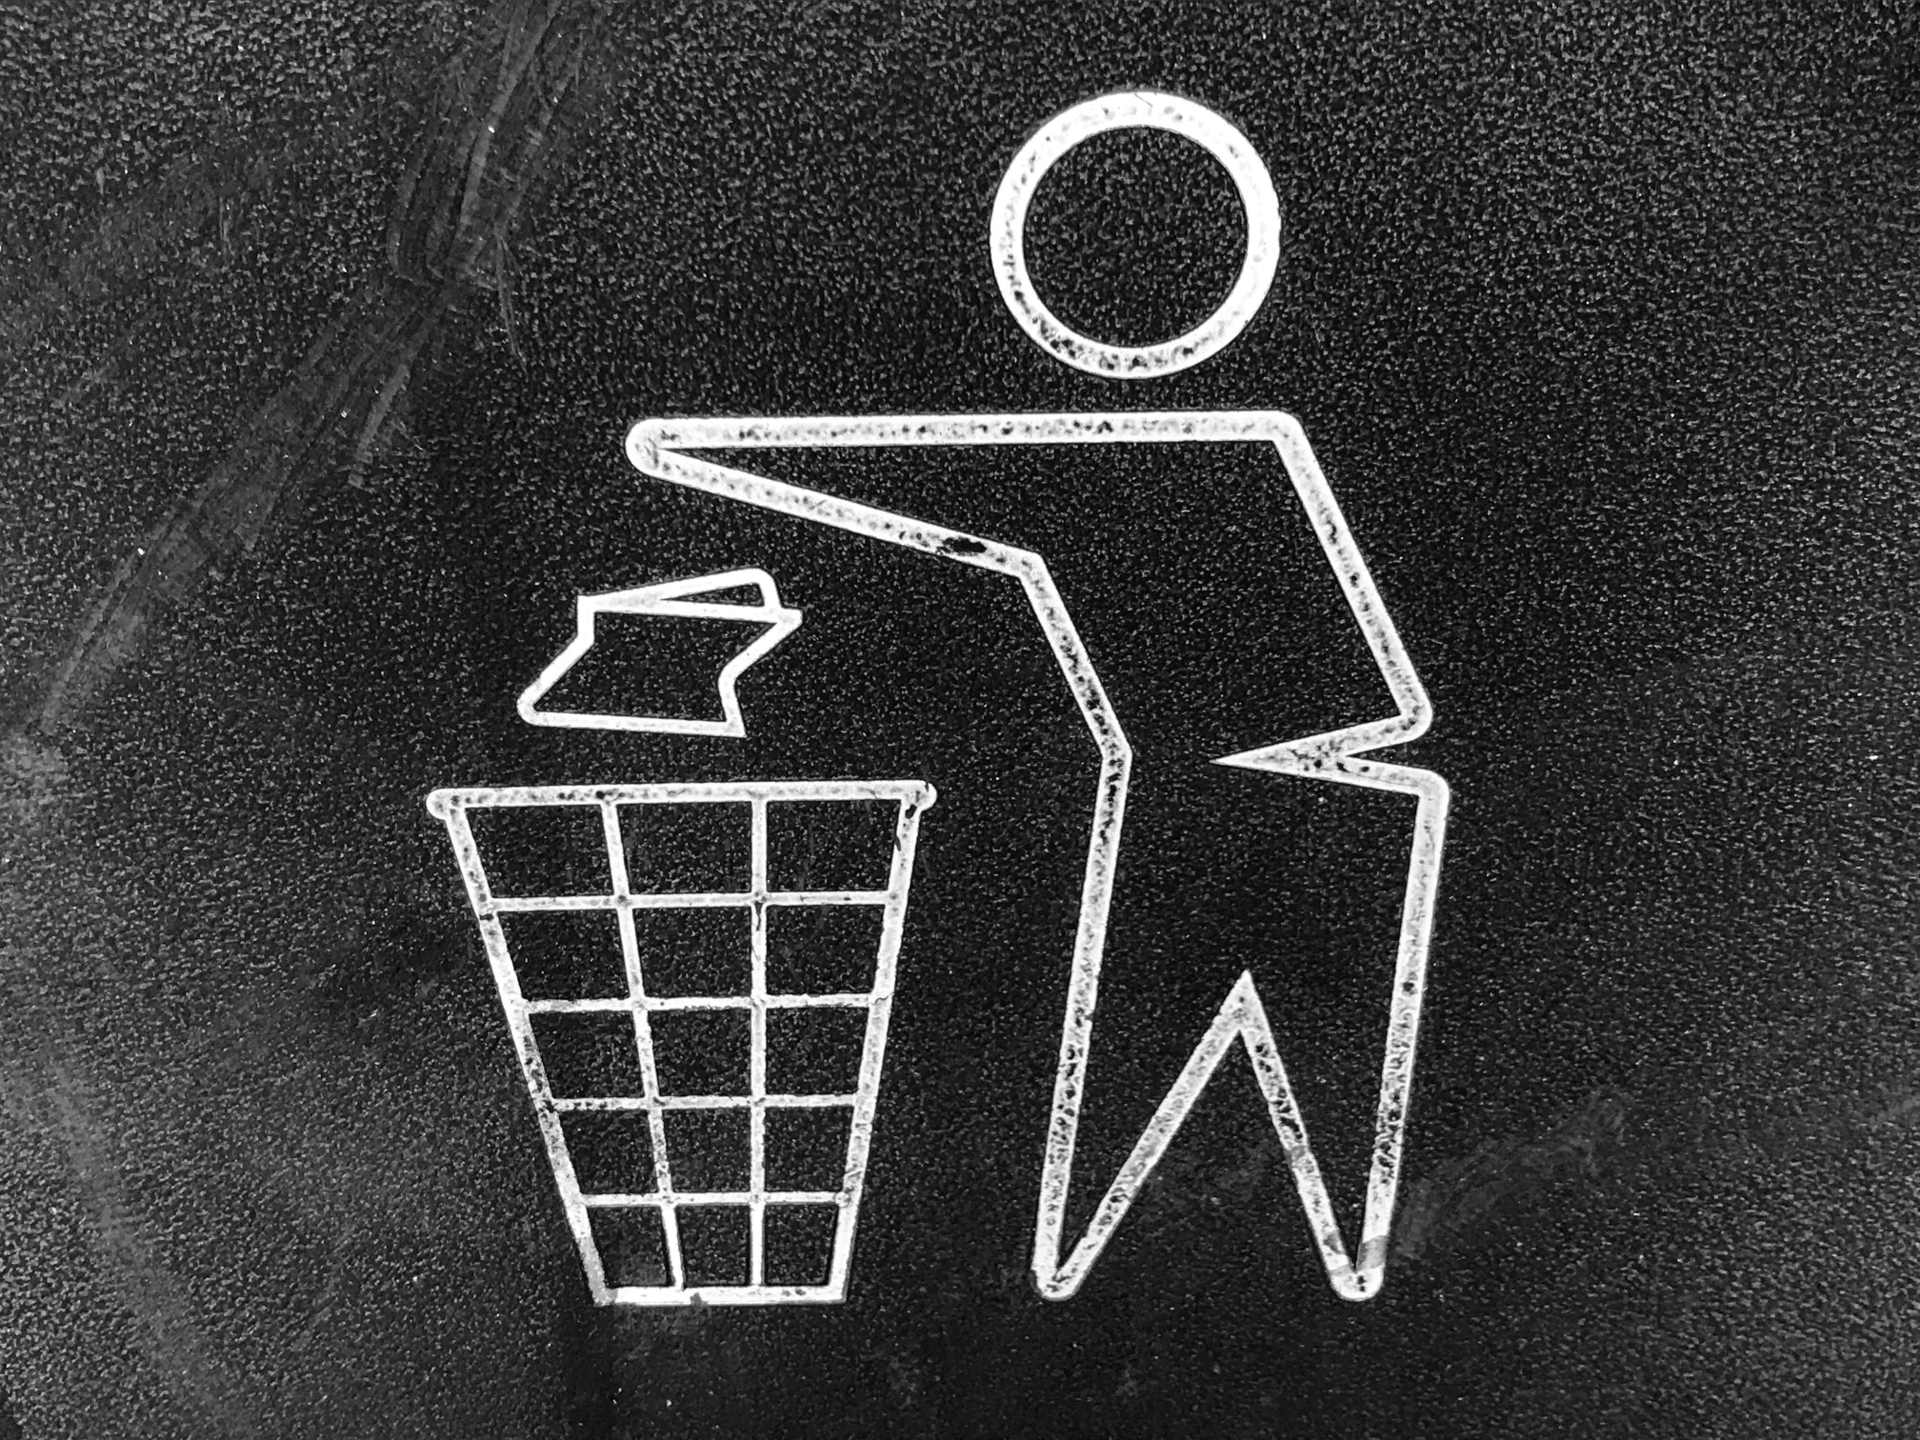 A sign depicting a person throwing trash into a bin.